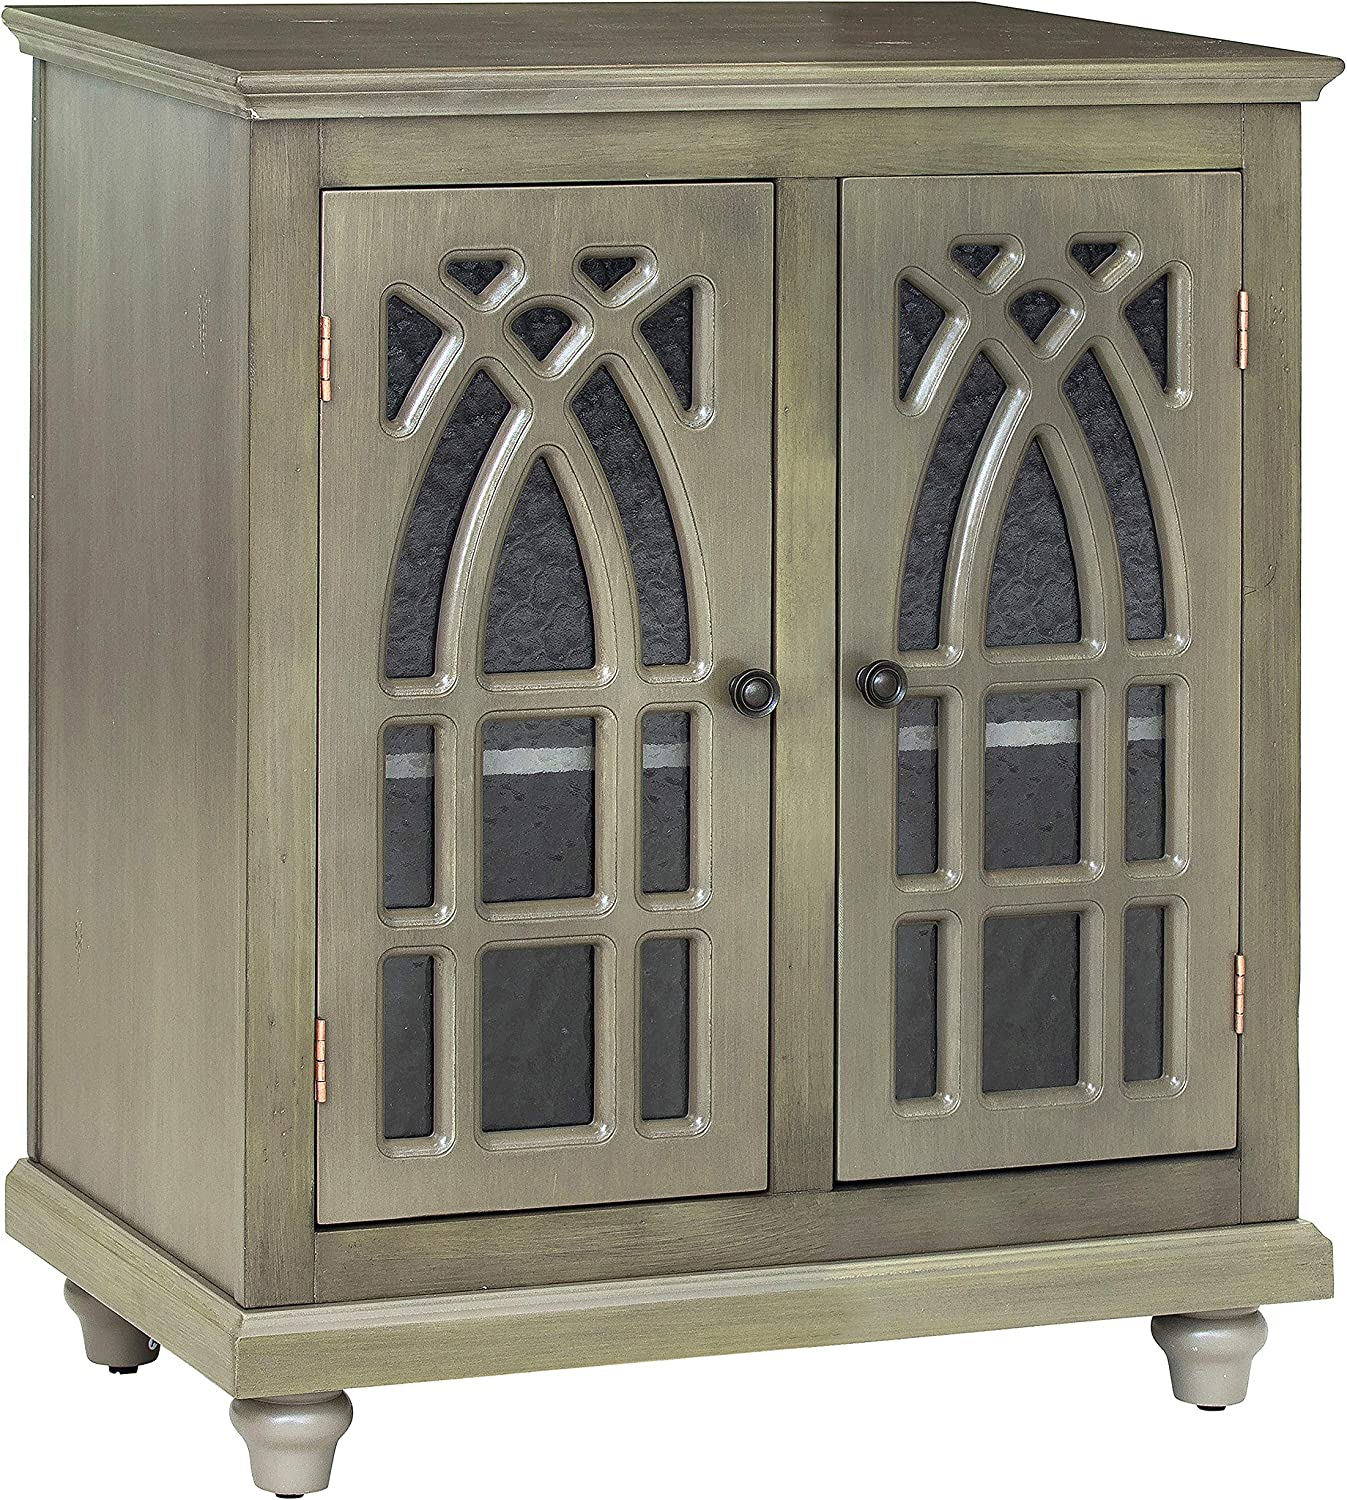 Glenwillow Home High Boy TV Stand//Accent Cabinet in Distressed Antique Earth Green